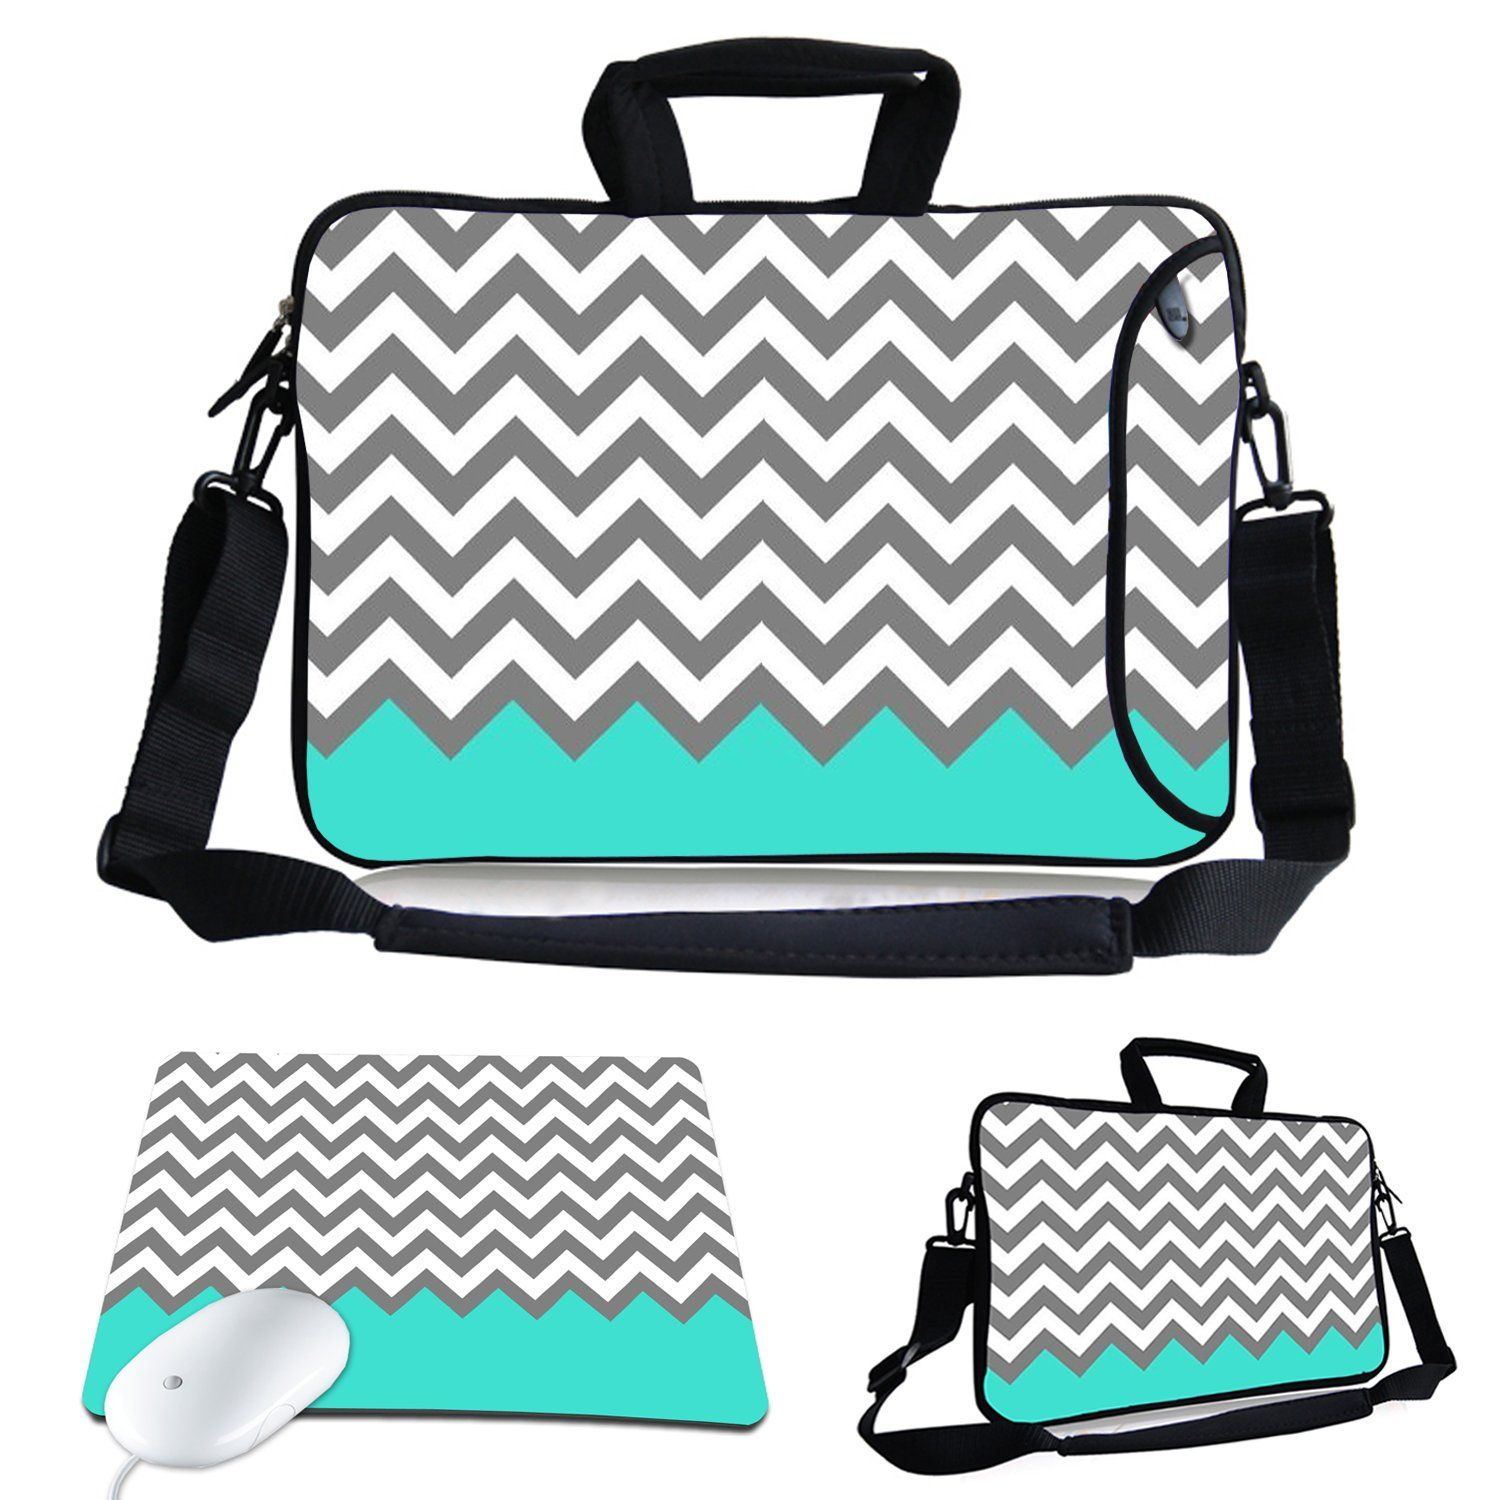 5a2abe7ccee Kitron (TM) 13-Inch Cute Colorful Cross Stripe Design Waterproof Neoprene Laptop  Sleeve Case Bag with Extra Side Pocket